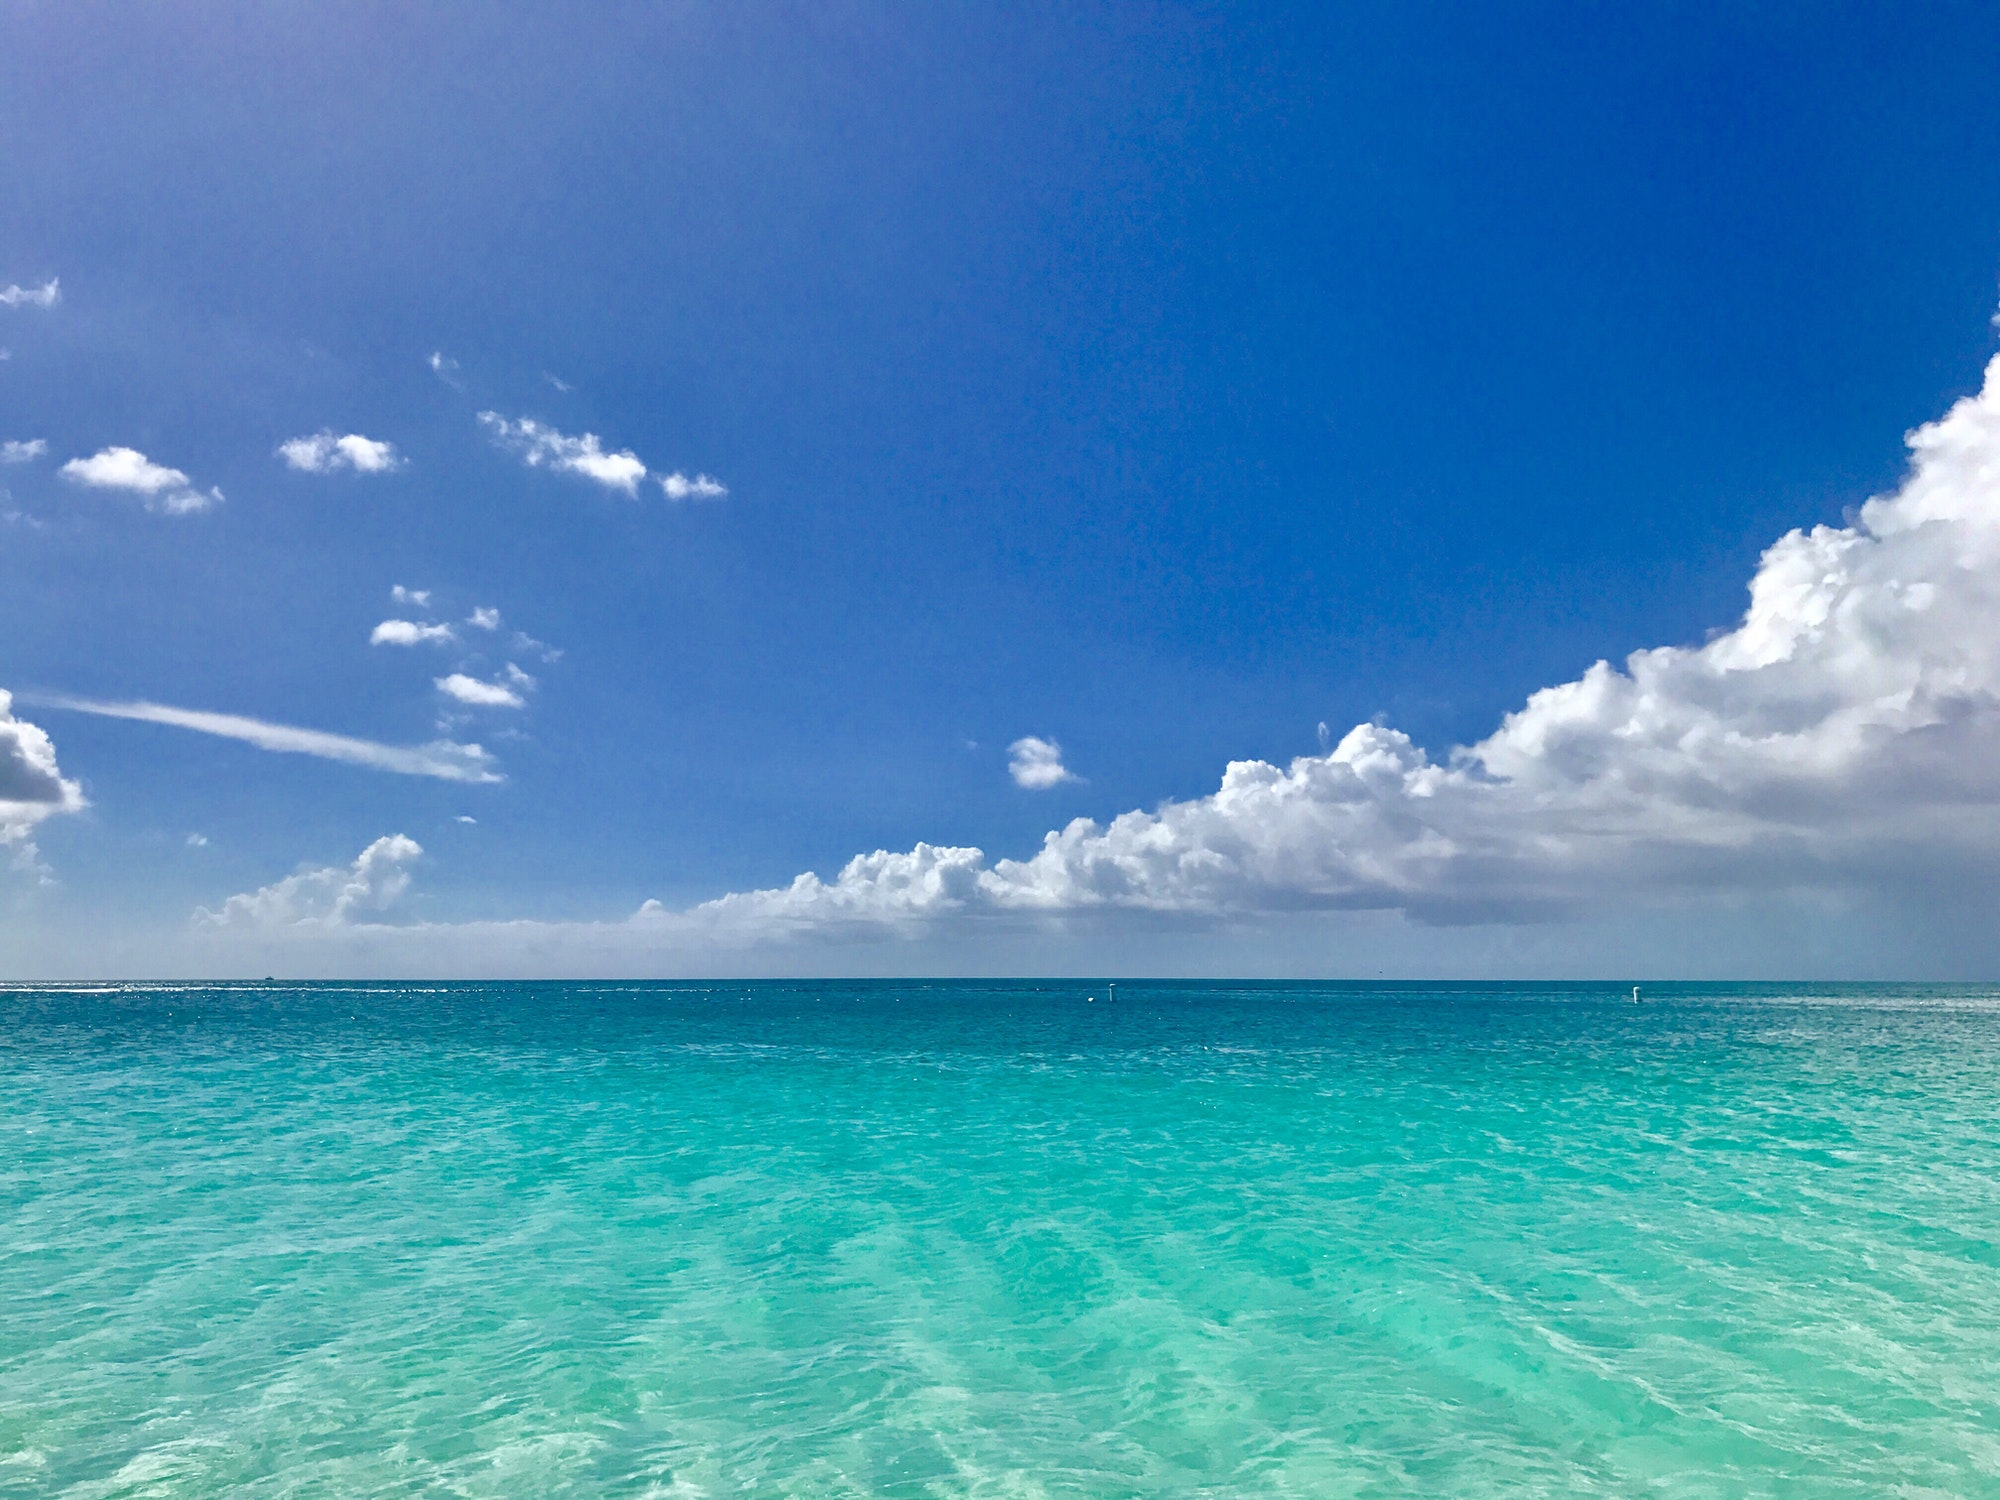 Turquoise water under the blue sky at Grace Bay, Turks and Caicos.